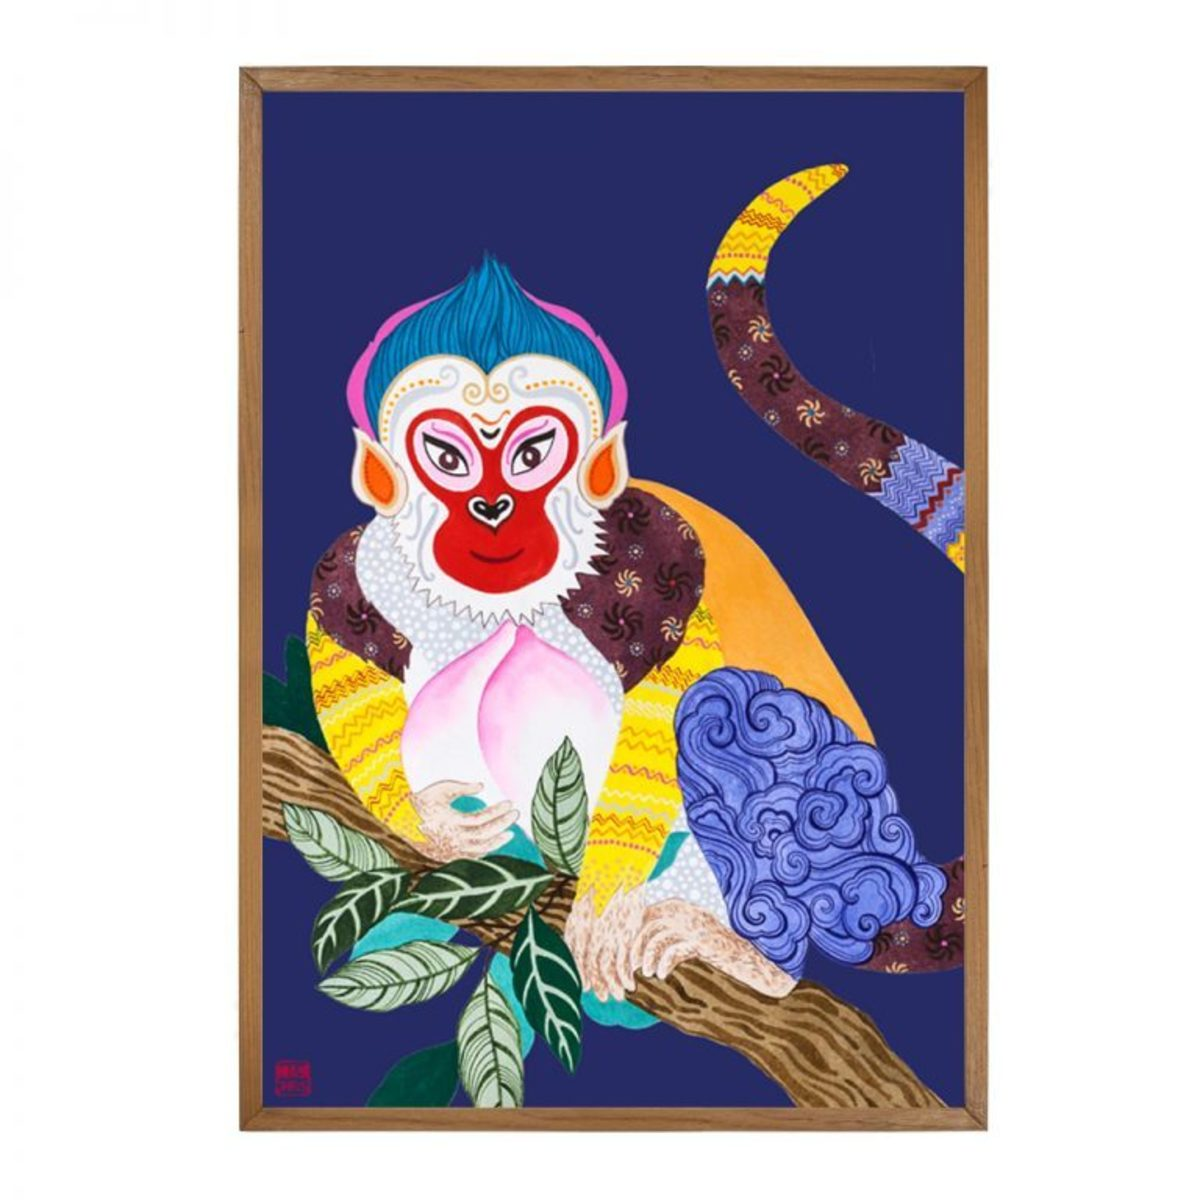 Monkey - Limited Edition Print of 25 (Framed)